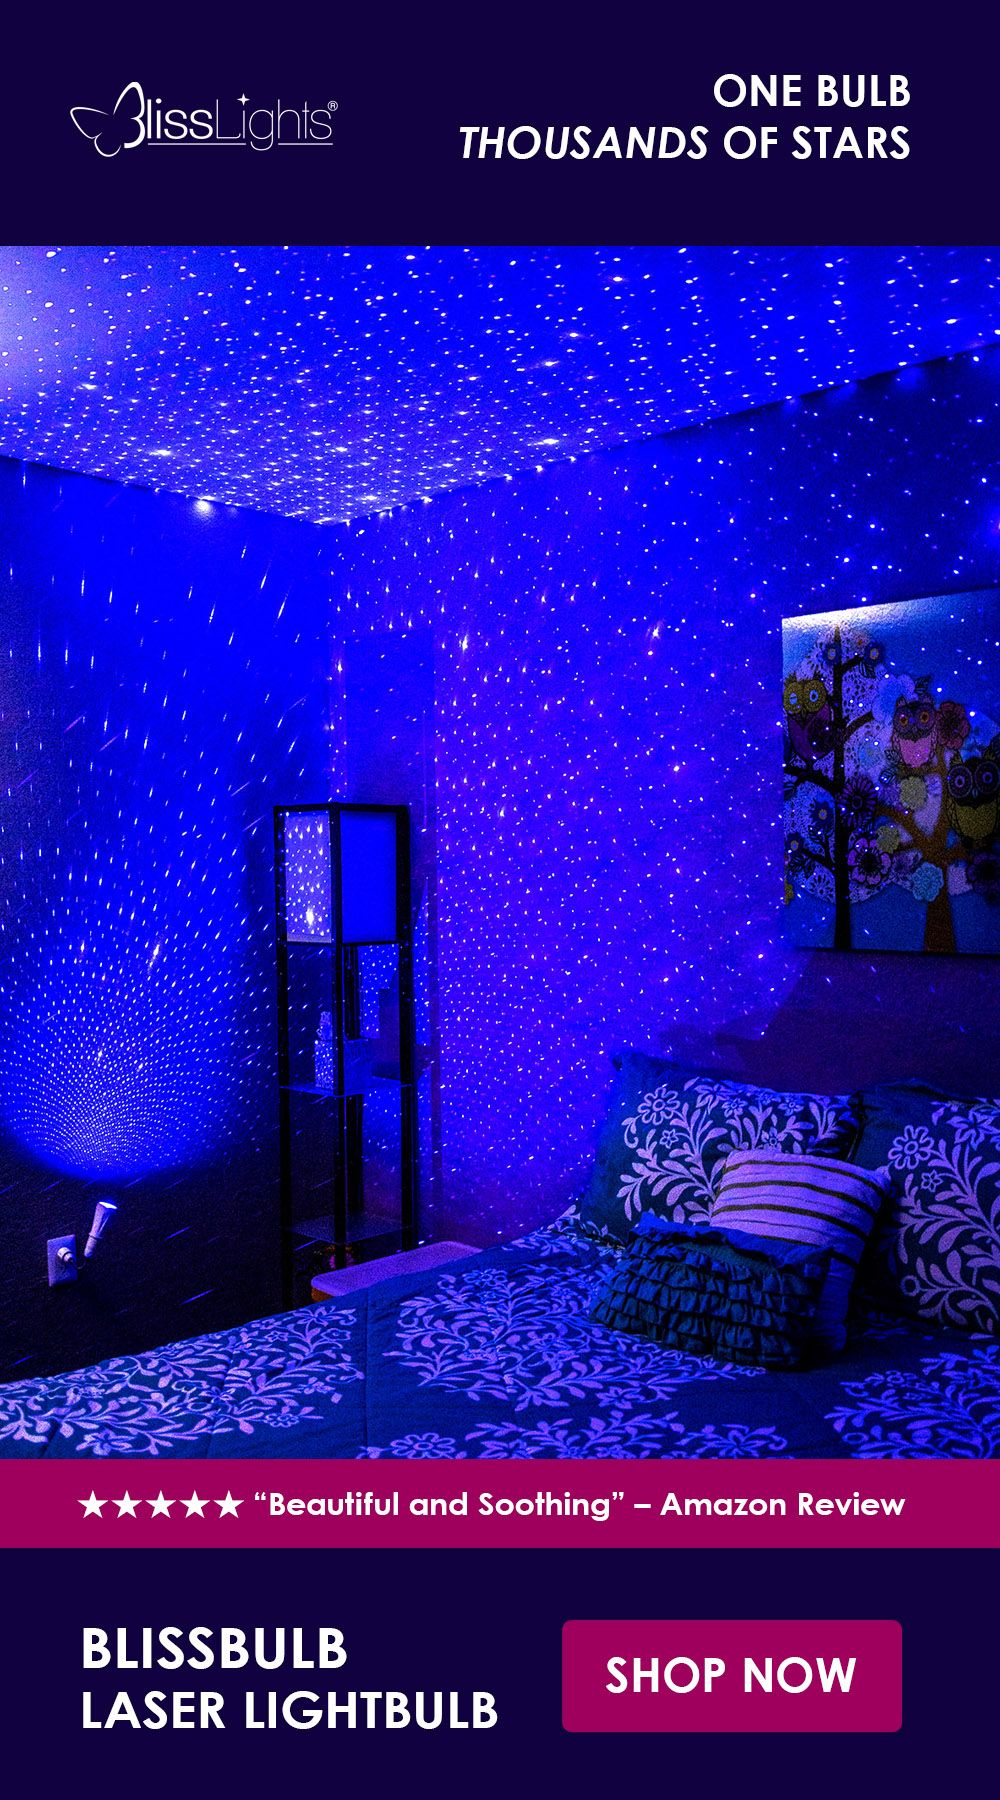 The Blisslights Blissbulb Will Transform Any Room Special Event Holiday Or Display With The Magic Of Thousan Blisslights Music Room Organization Dream Rooms